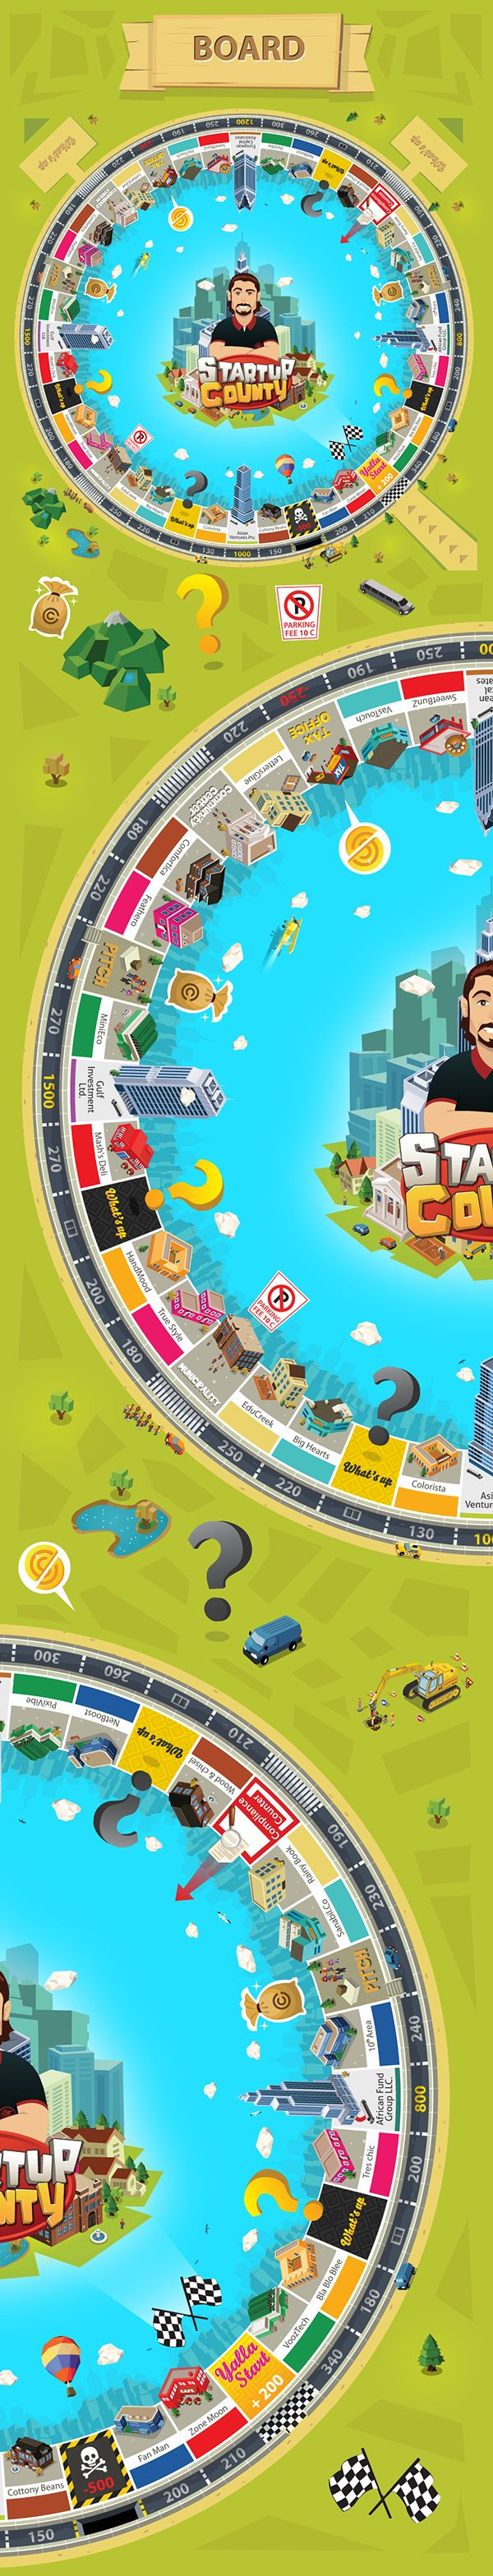 Startup County - Board Game on Behance